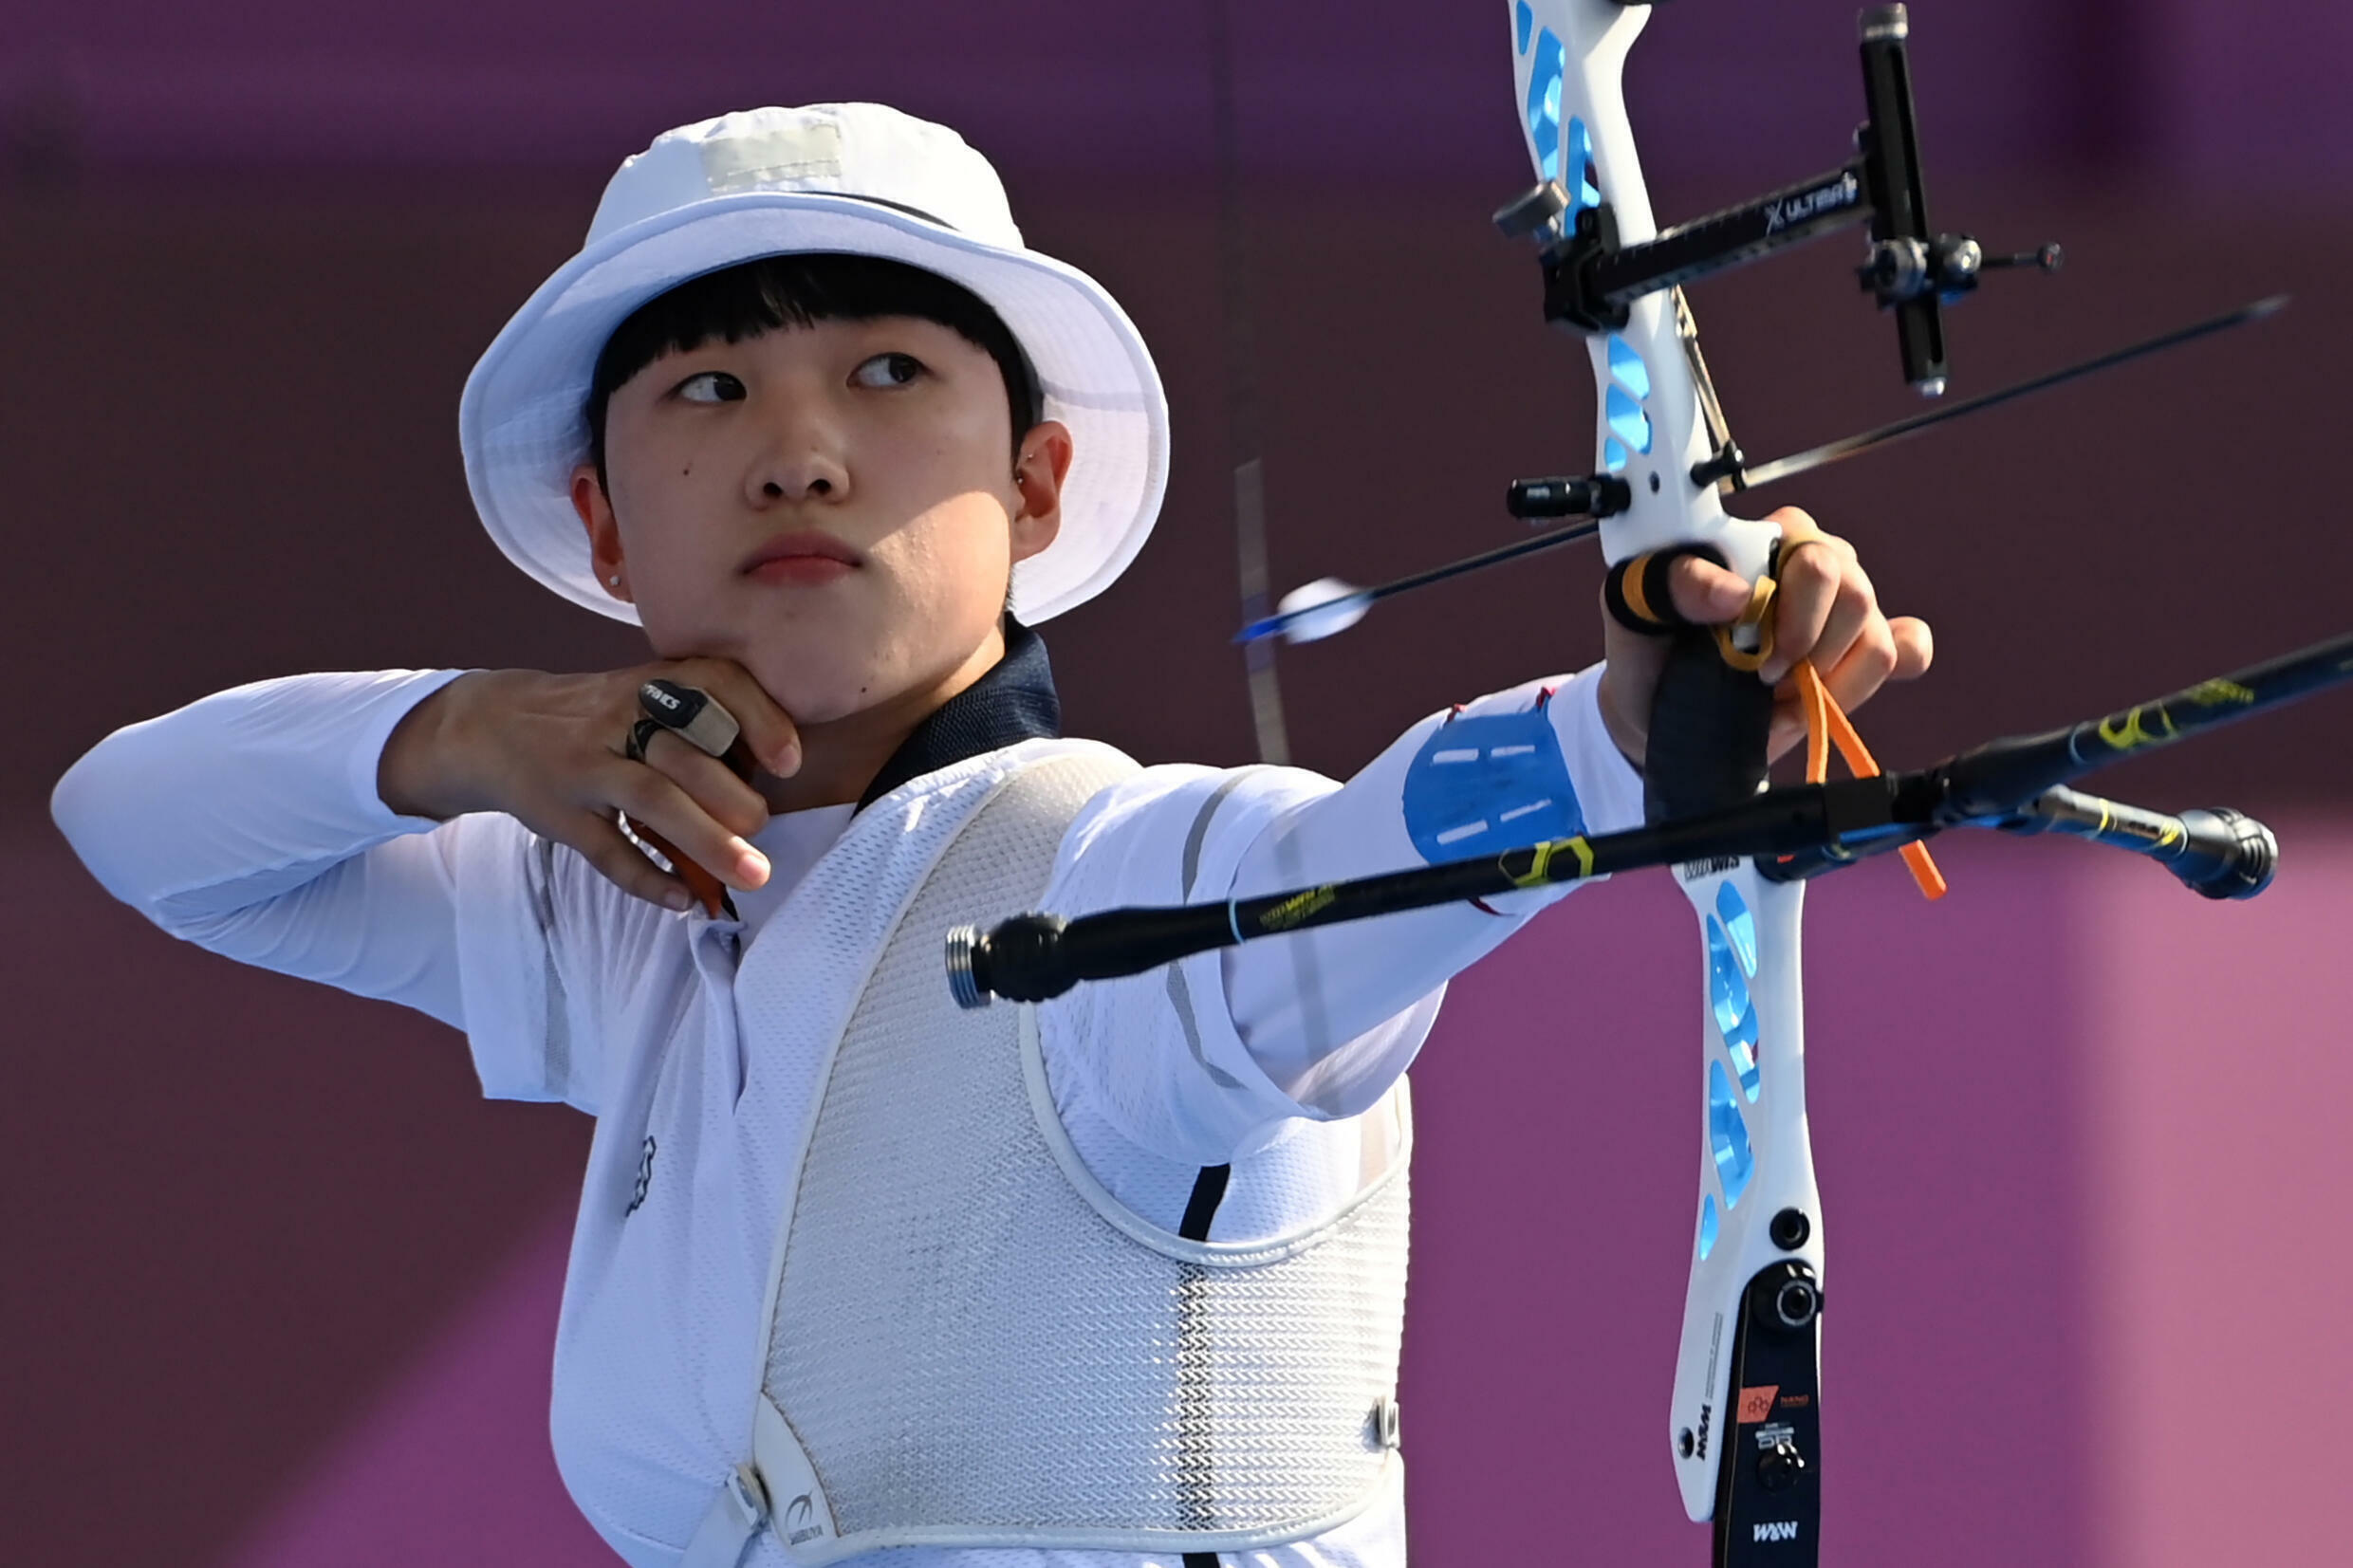 An San has won two gold medals in the women's team and mixed team events in Tokyo